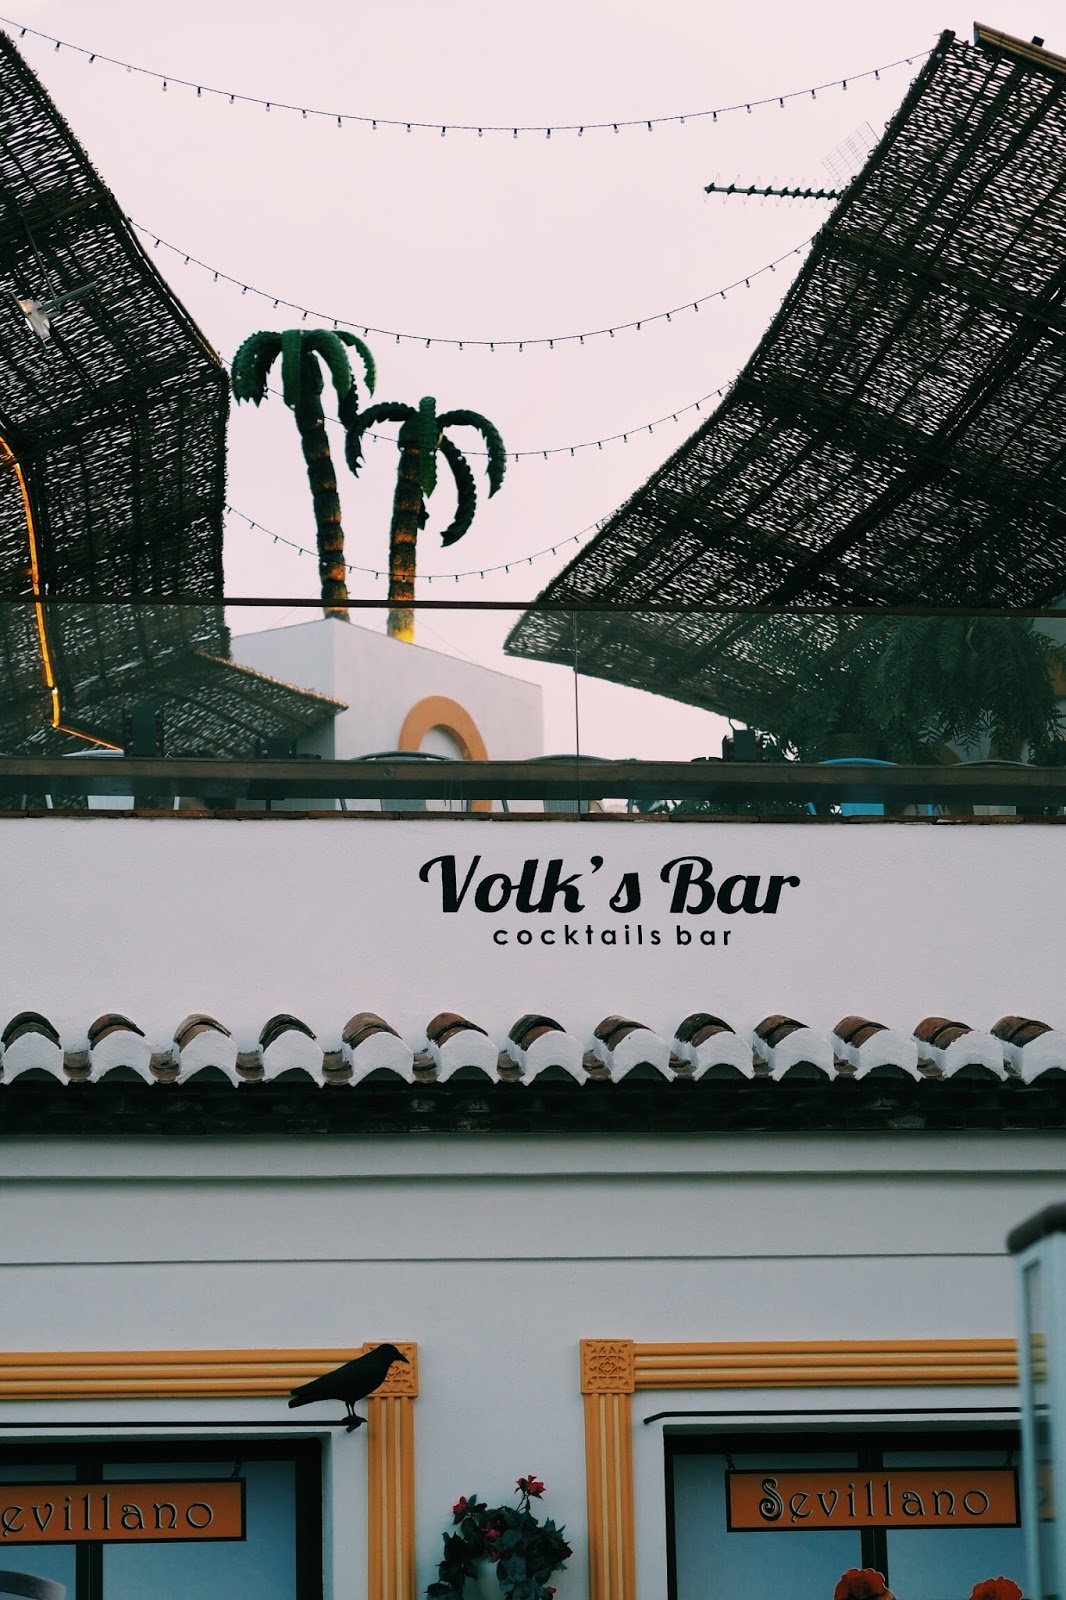 Nerja pictures where to eat what to do 2017 volks bar